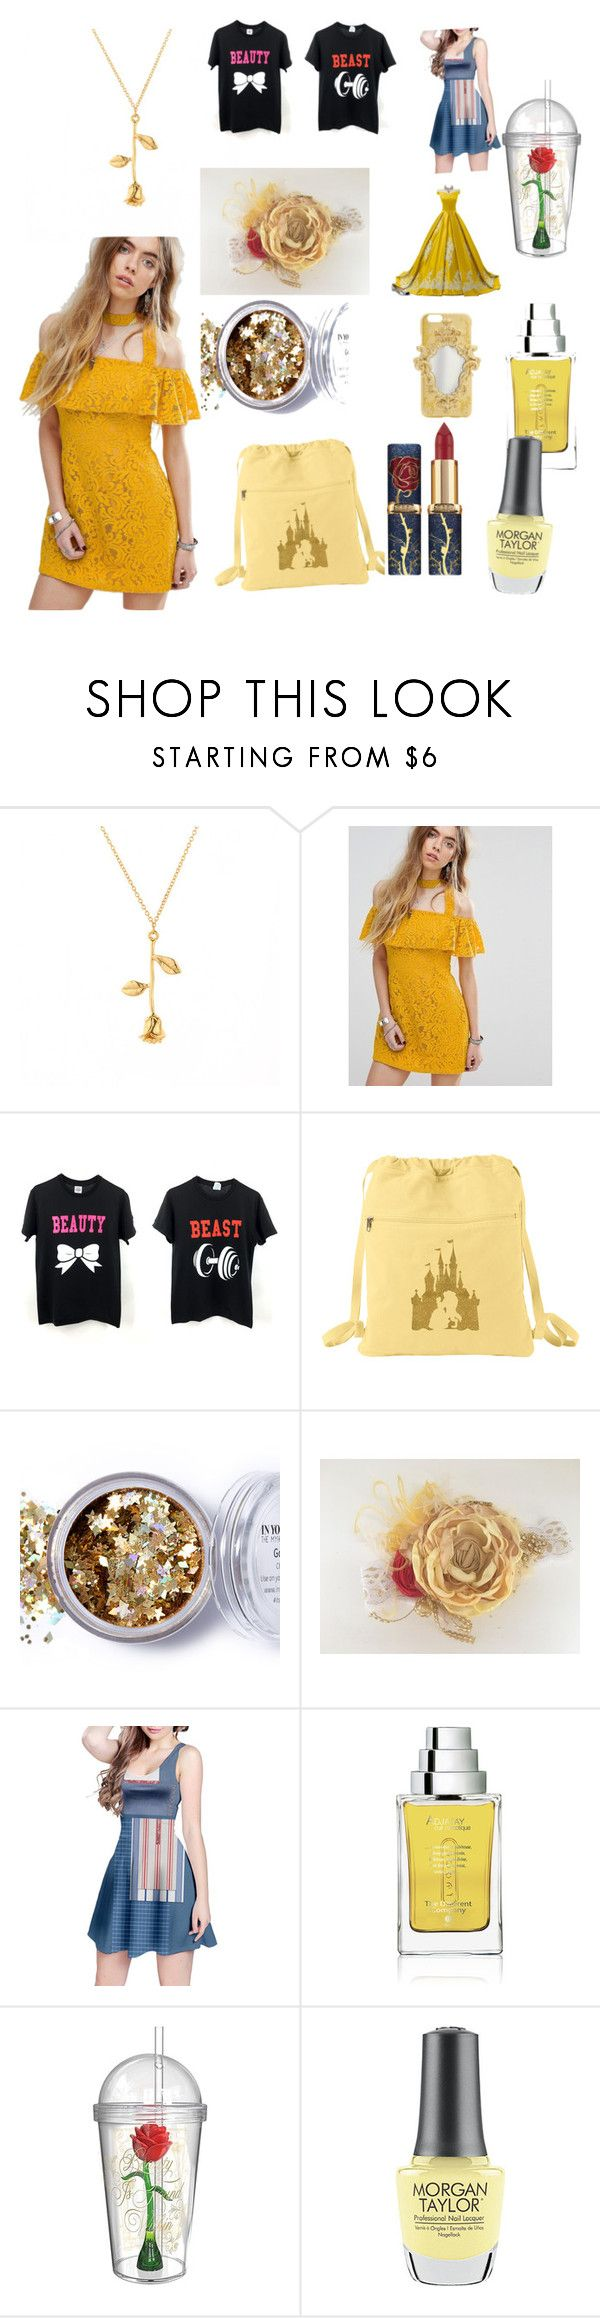 """""""Beauty and the beast"""" by hzmwilcox ❤ liked on Polyvore featuring MINKPINK, In Your Dreams, L'Oréal Paris, The Different Company, Zak! Designs and Morgan Taylor"""